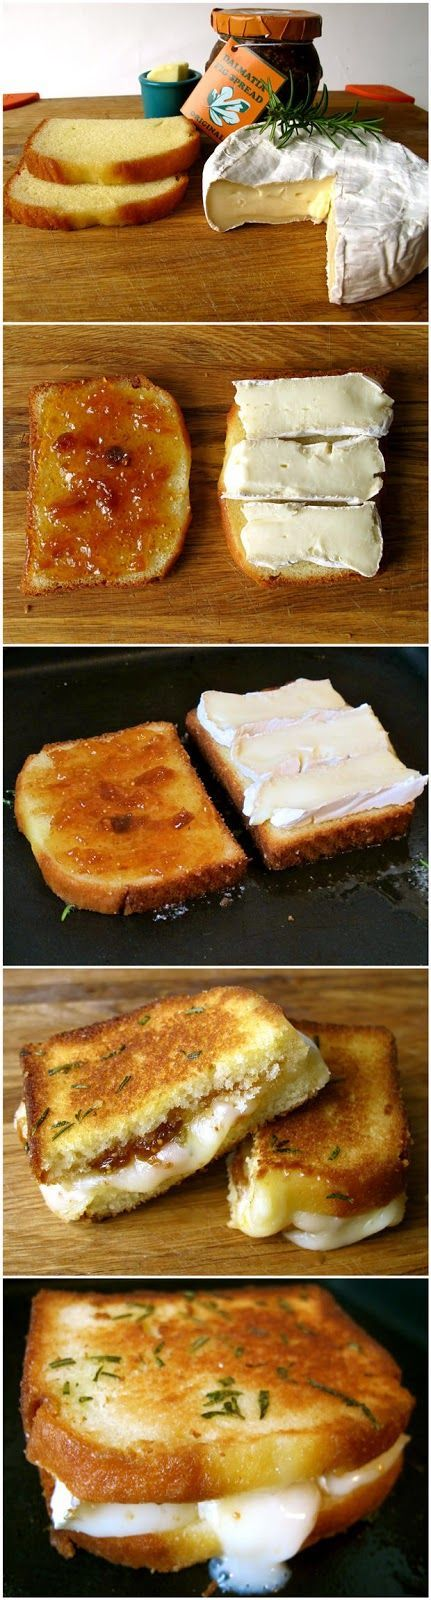 Savory grilled cheese sandwich: rosemary butter, brie, fig preserves, and pound cake.